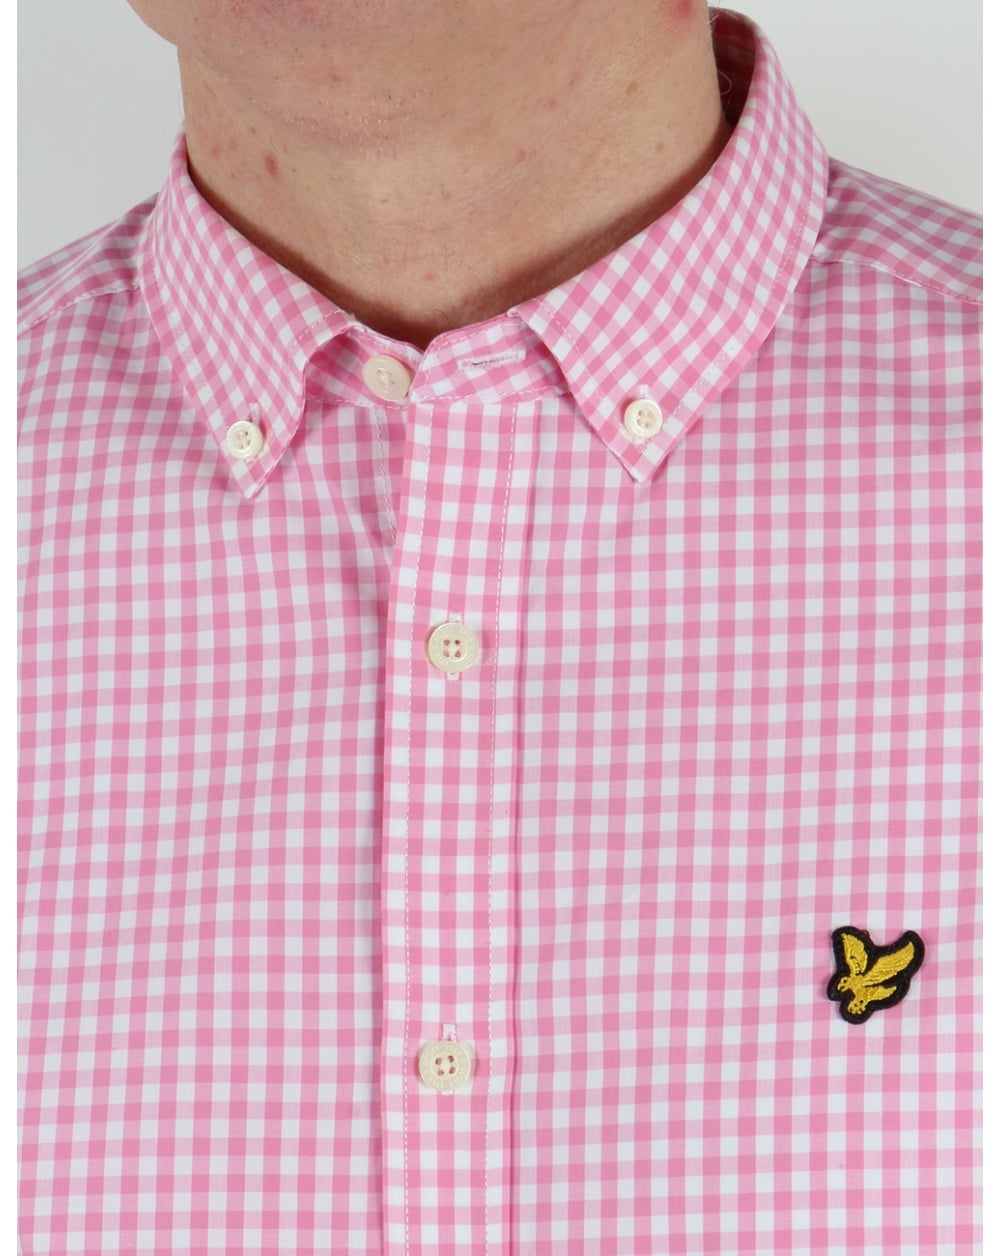 Lyle And Scott Short Sleeve Gingham Check Shirt Summer Pink